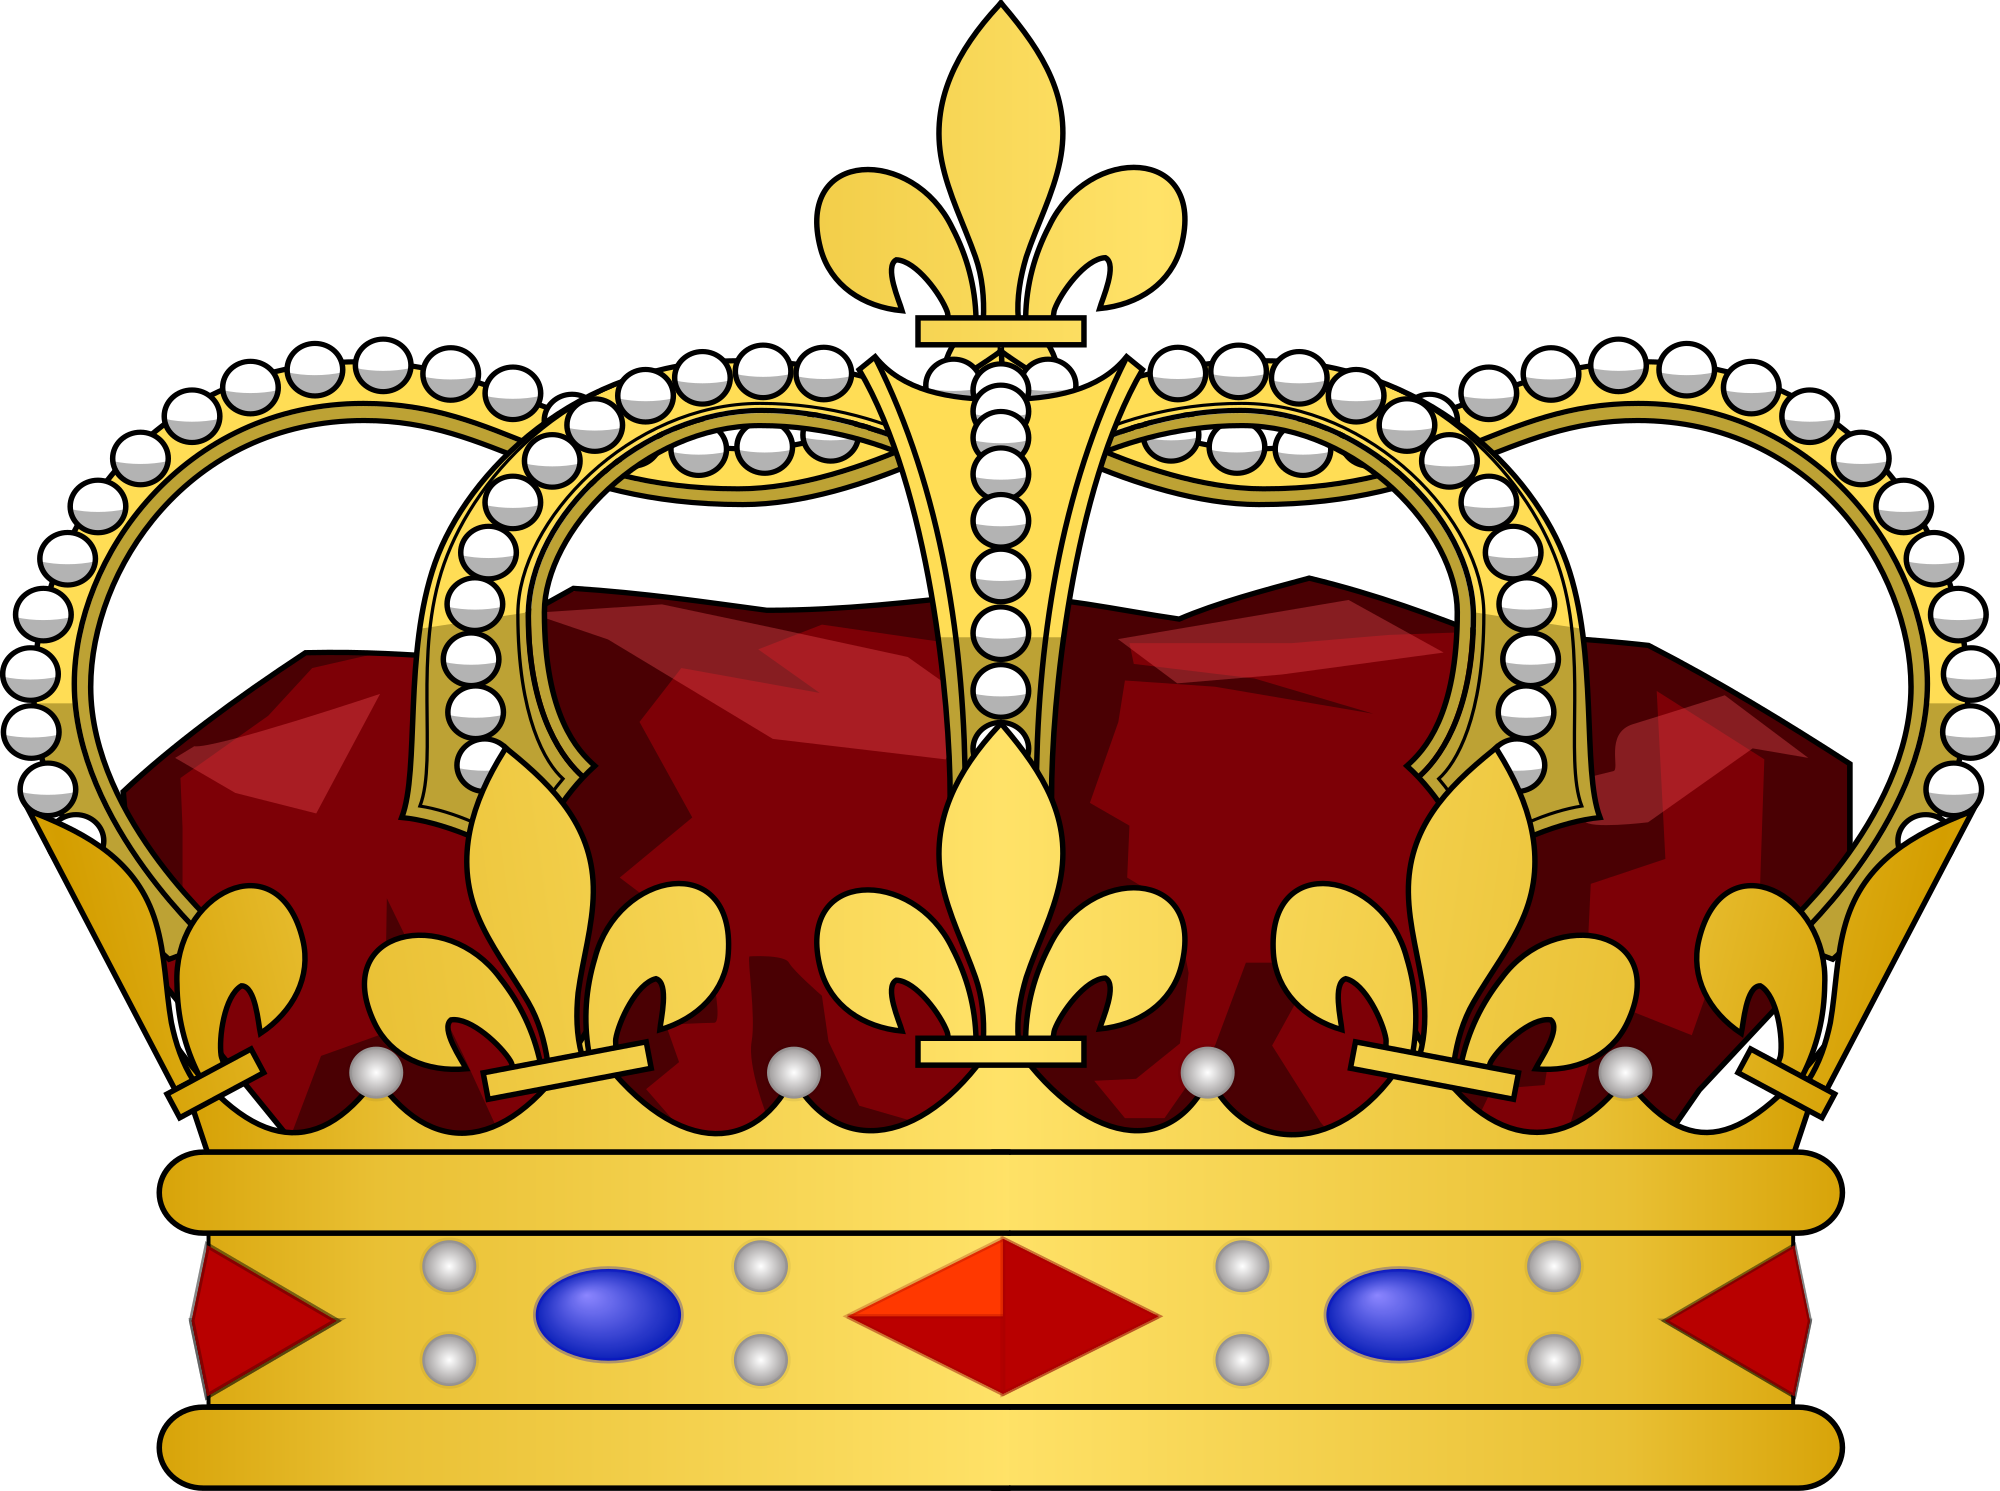 King clipart svg, King svg Transparent FREE for download on.